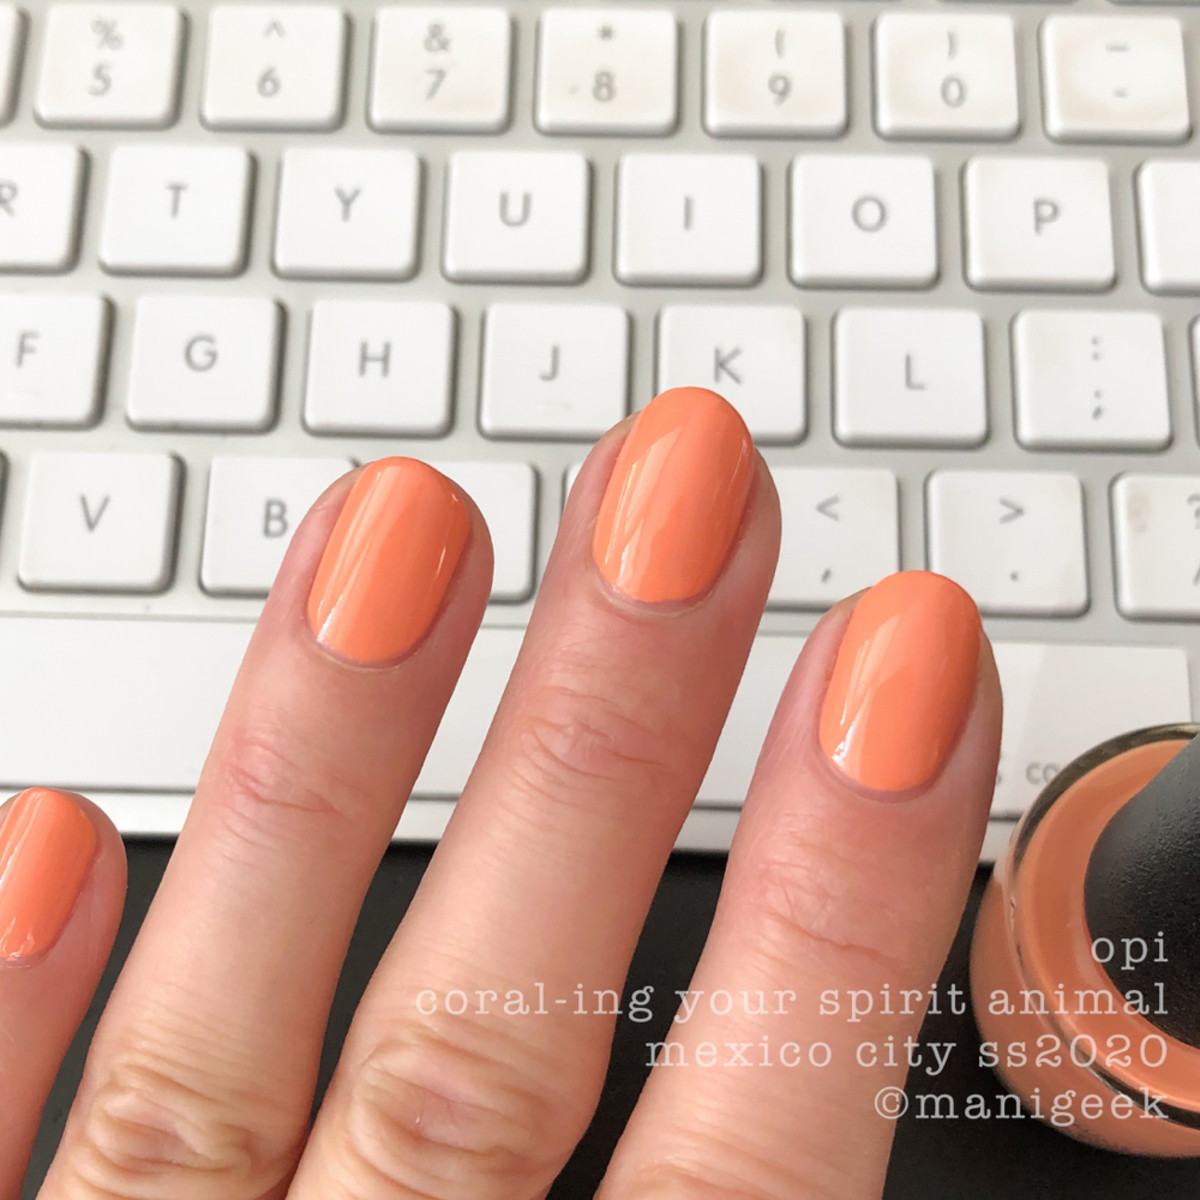 OPI Coral-ing Your Spirit Animal - OPI Mexico City Swatches Review 2020